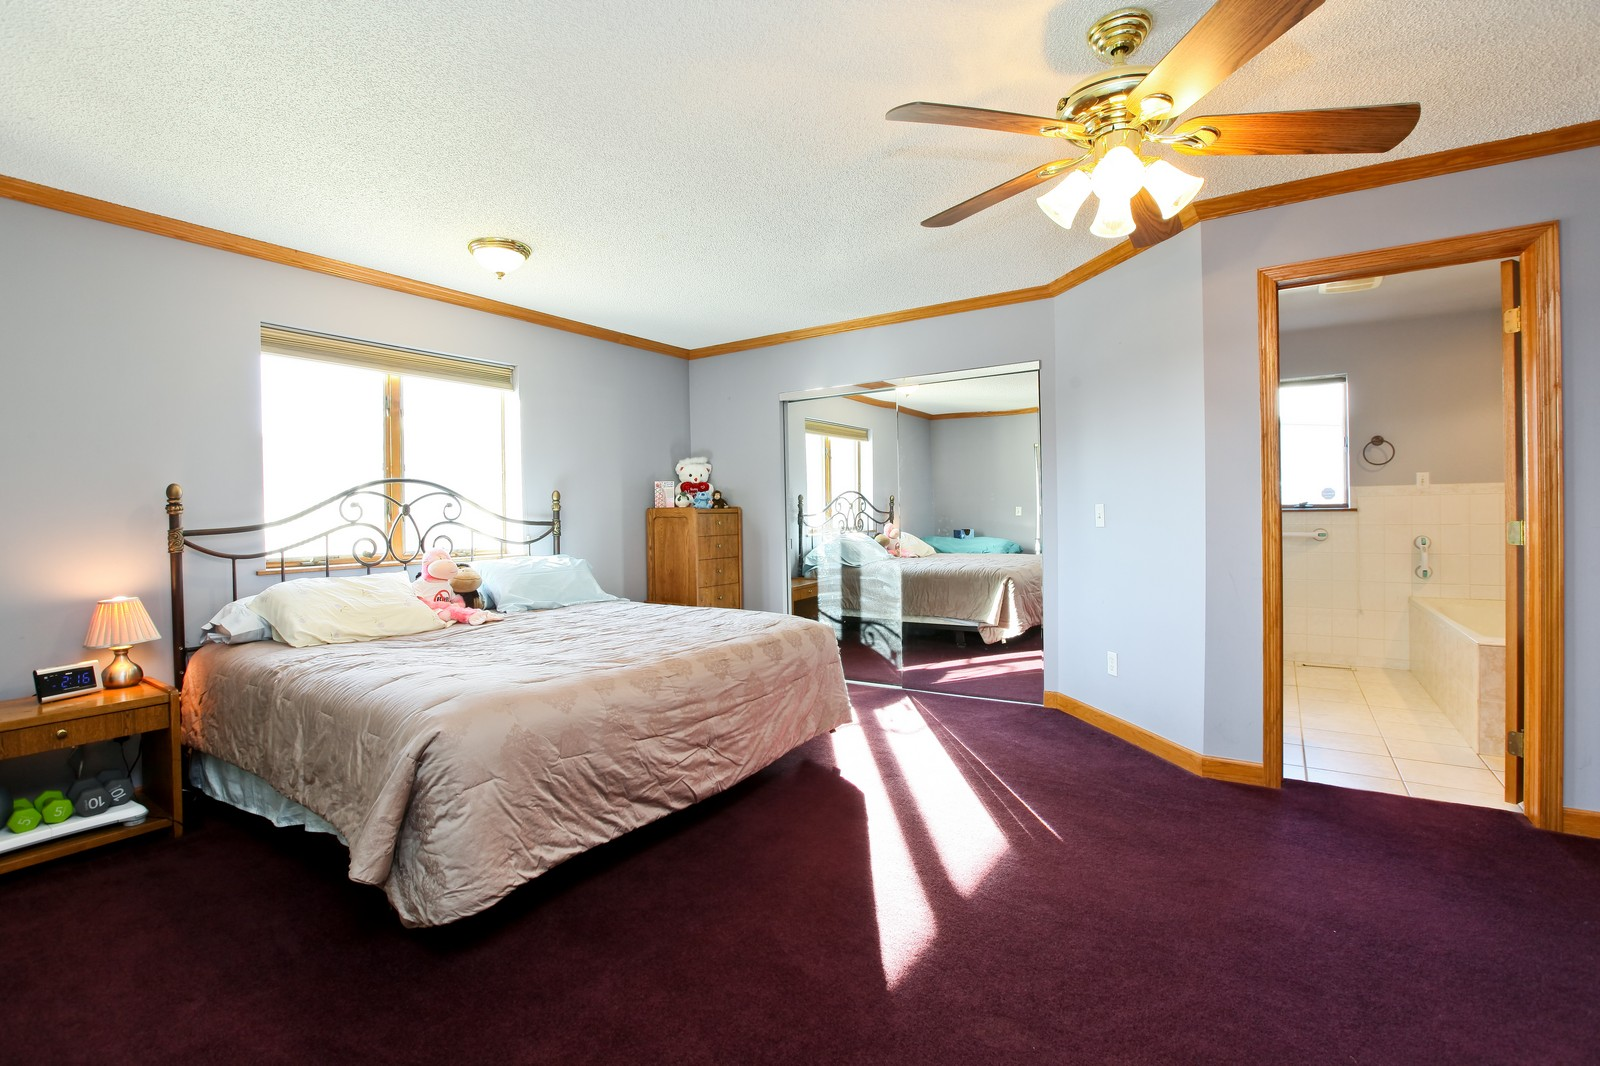 Real Estate Photography - 8095 Trail Haven Rd, Corcoran, MN, 55340 - Master Bedroom